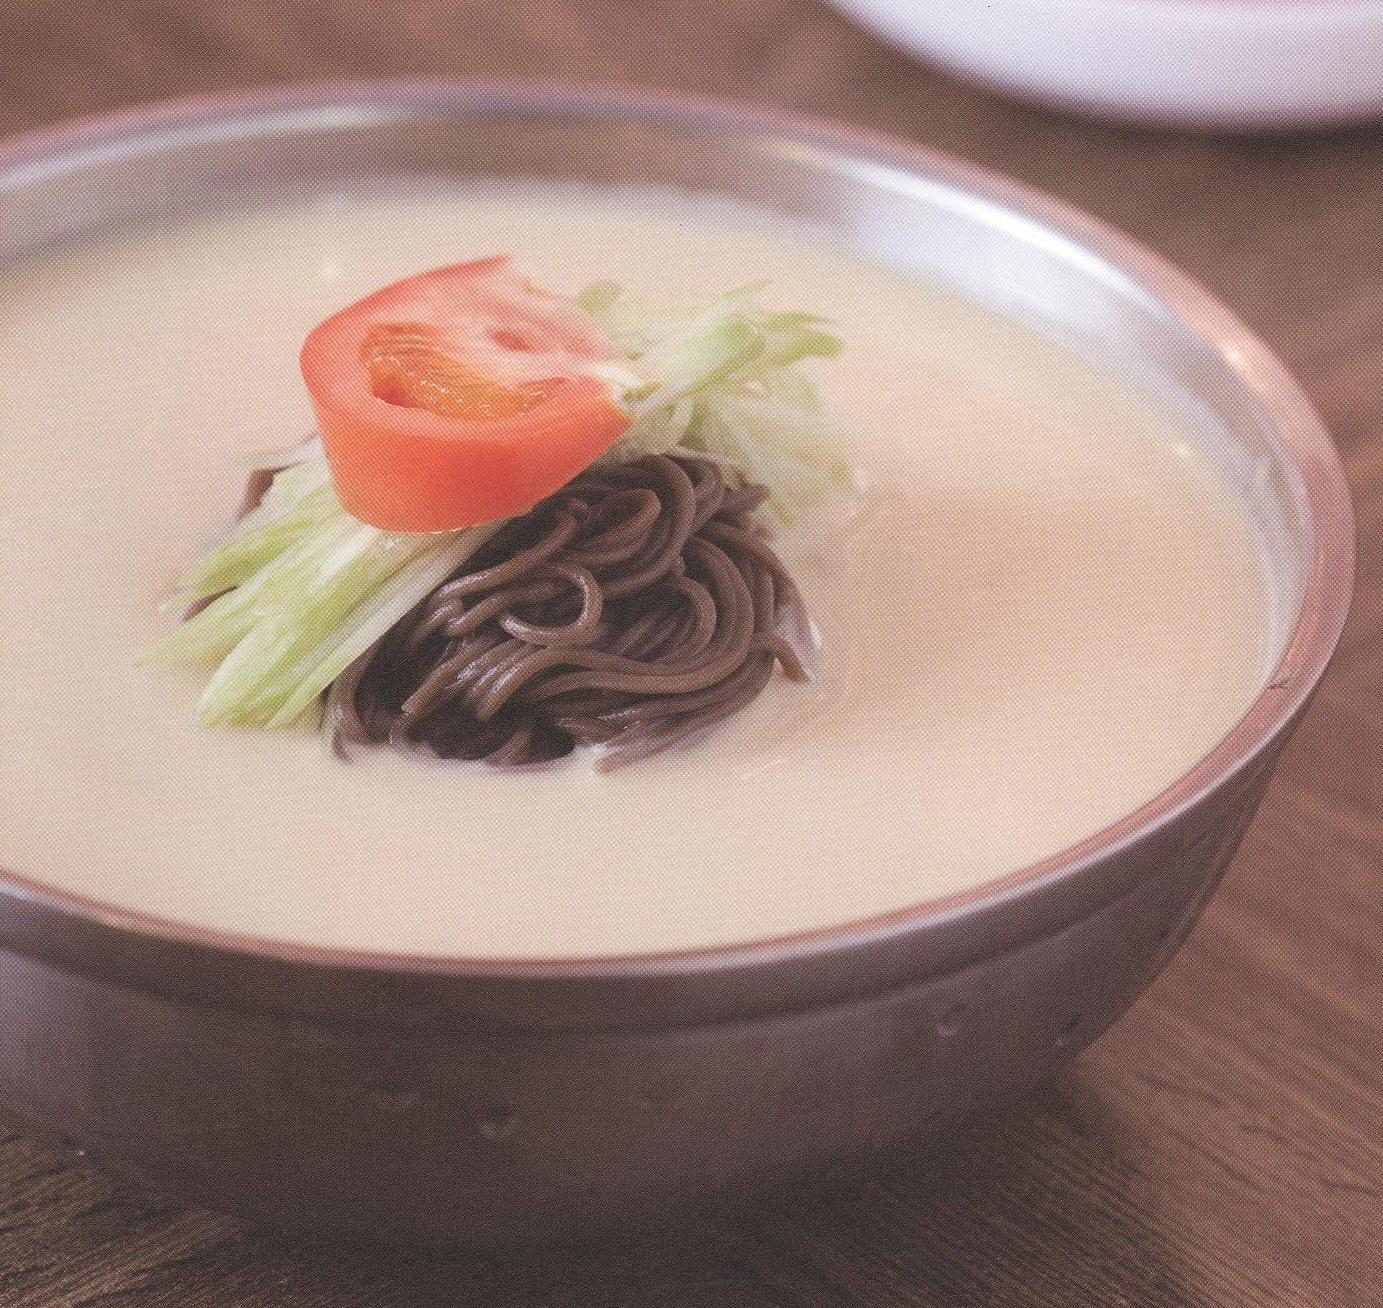 Dark noodles in a white sauce with a tomato slice on top